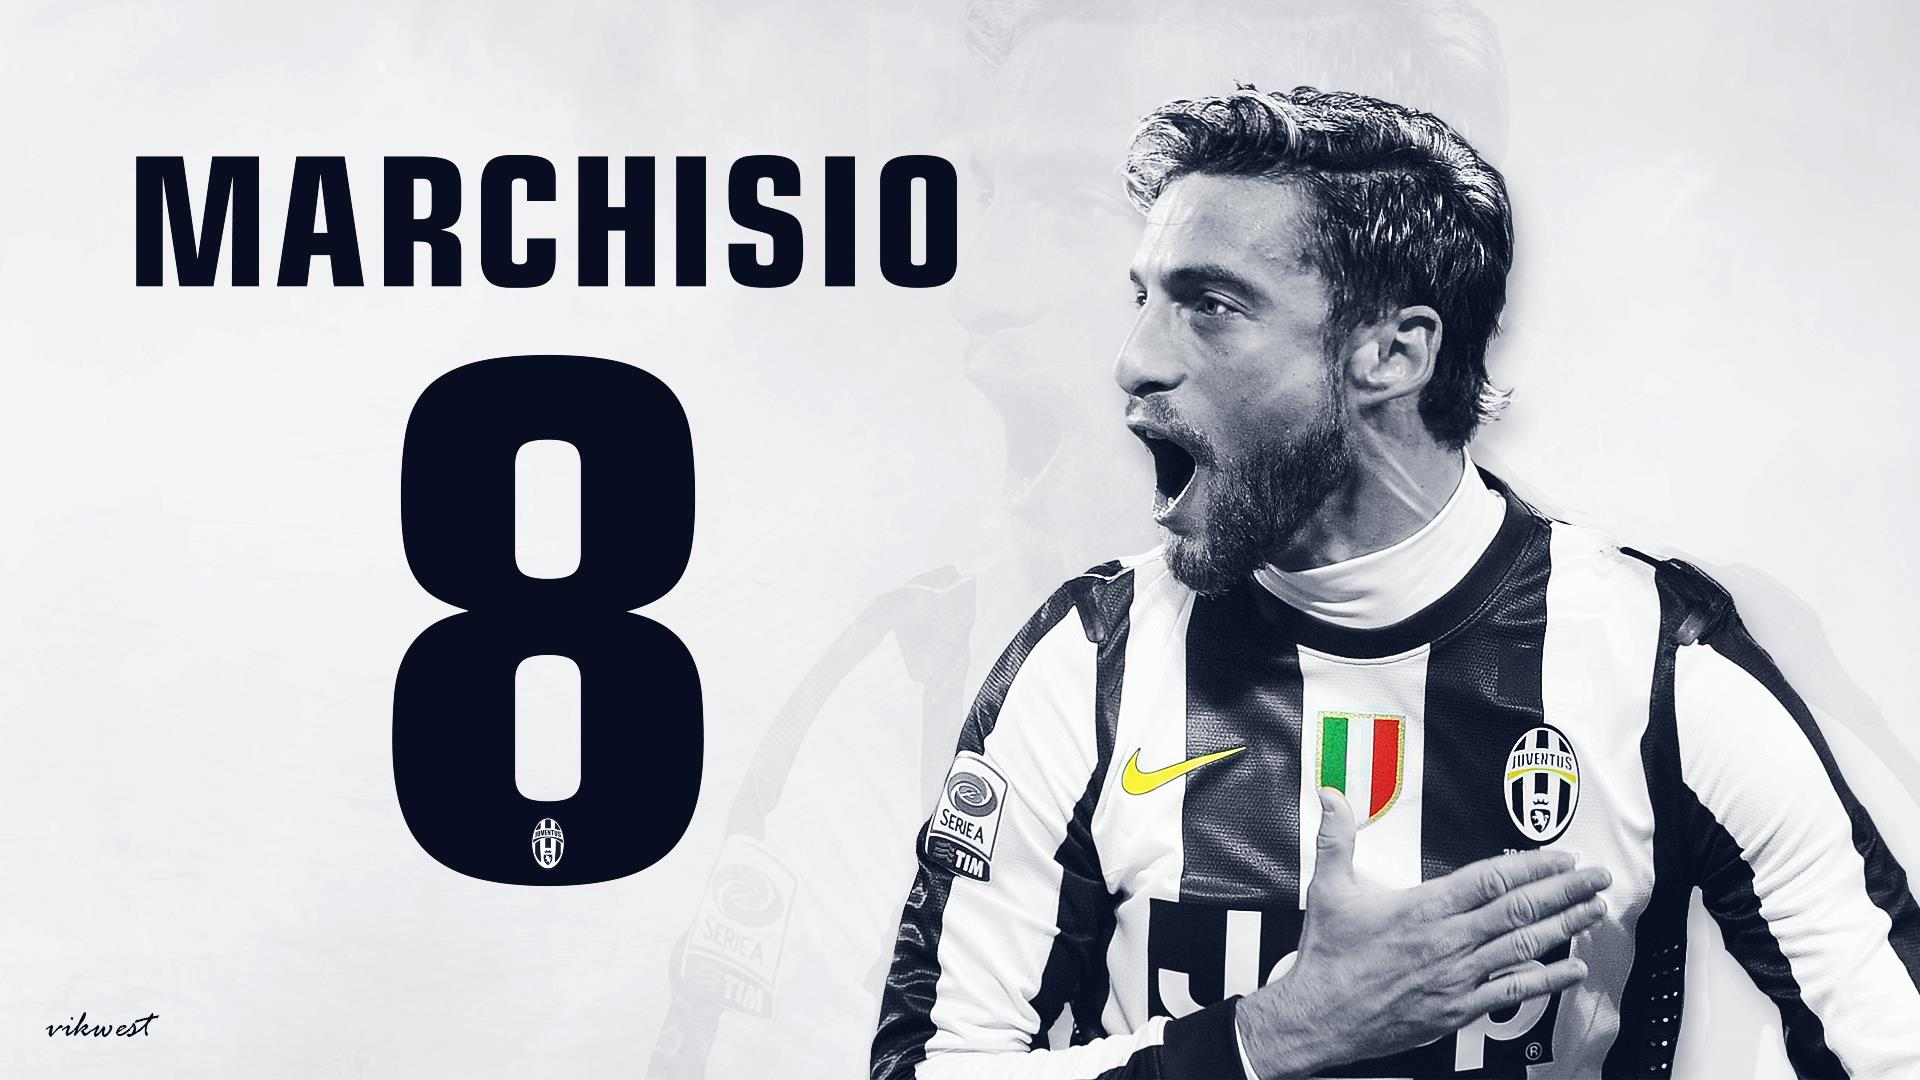 Claudio marchisio football player juventus full hd wallpaper download original voltagebd Image collections